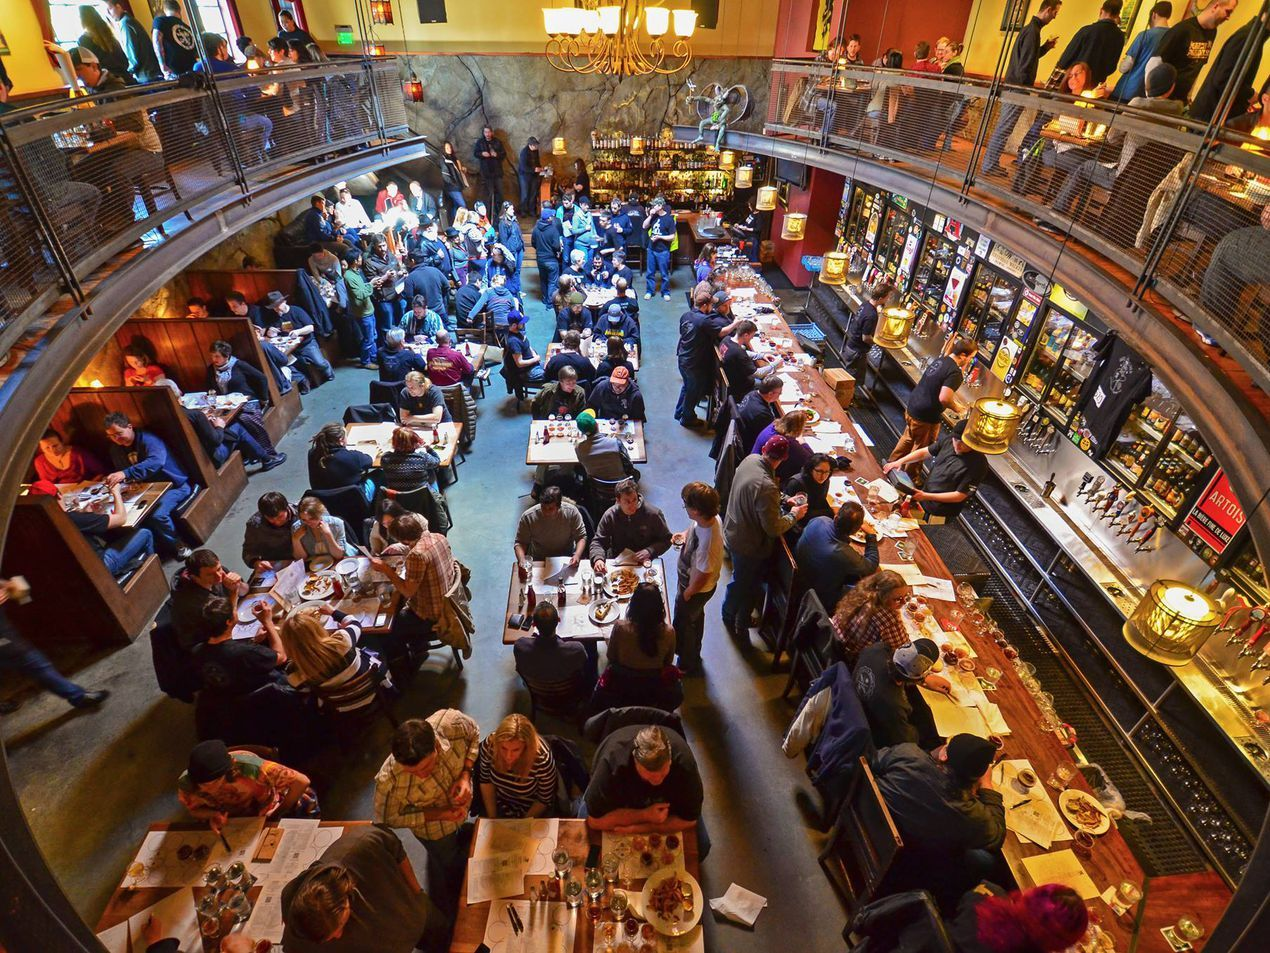 15 fantastic restaurants to check out in fremont beer